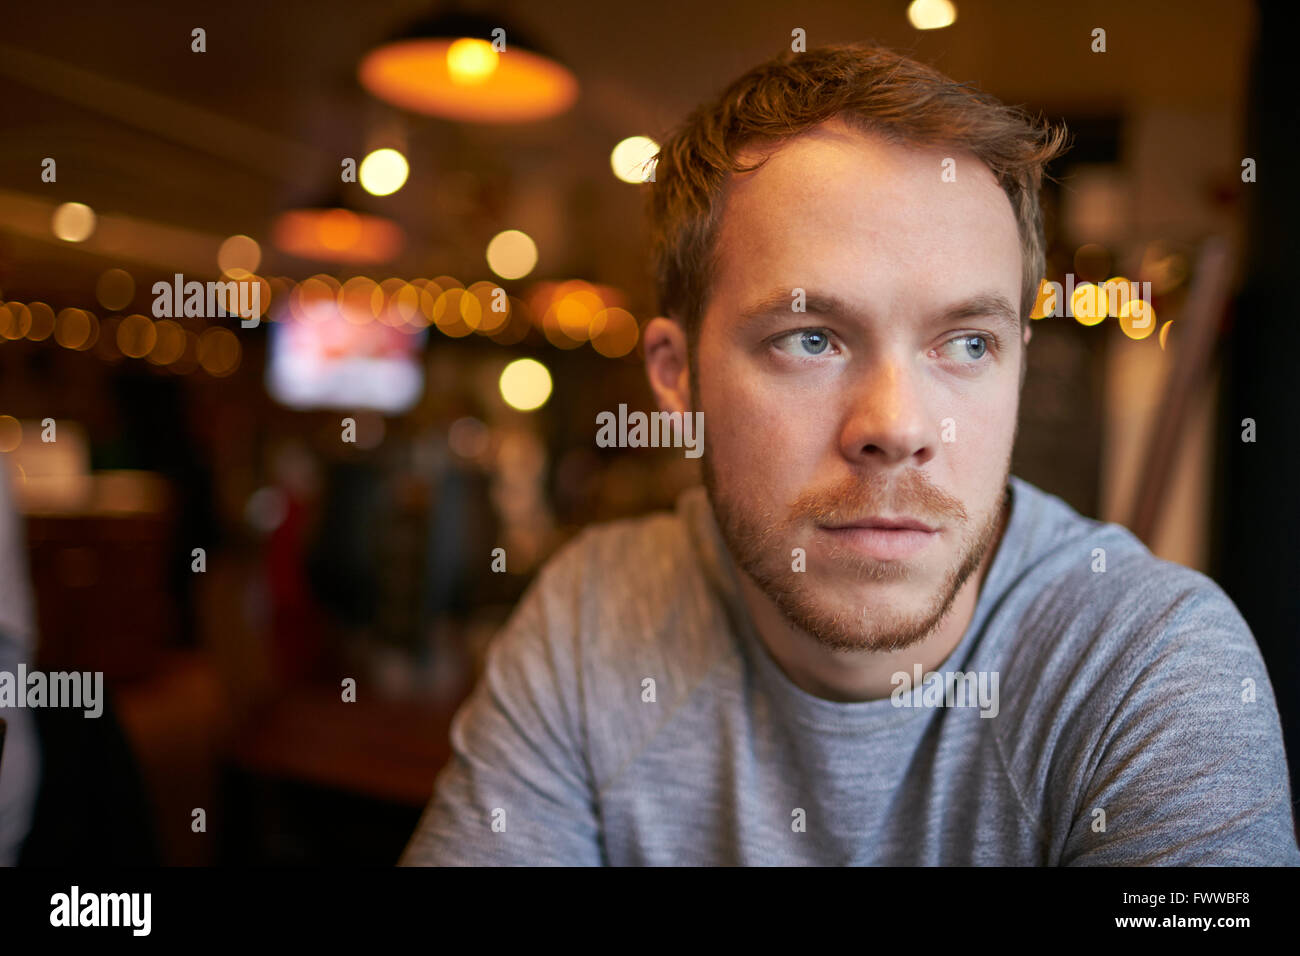 Young Man Sitting Alone In Bar - Stock Image